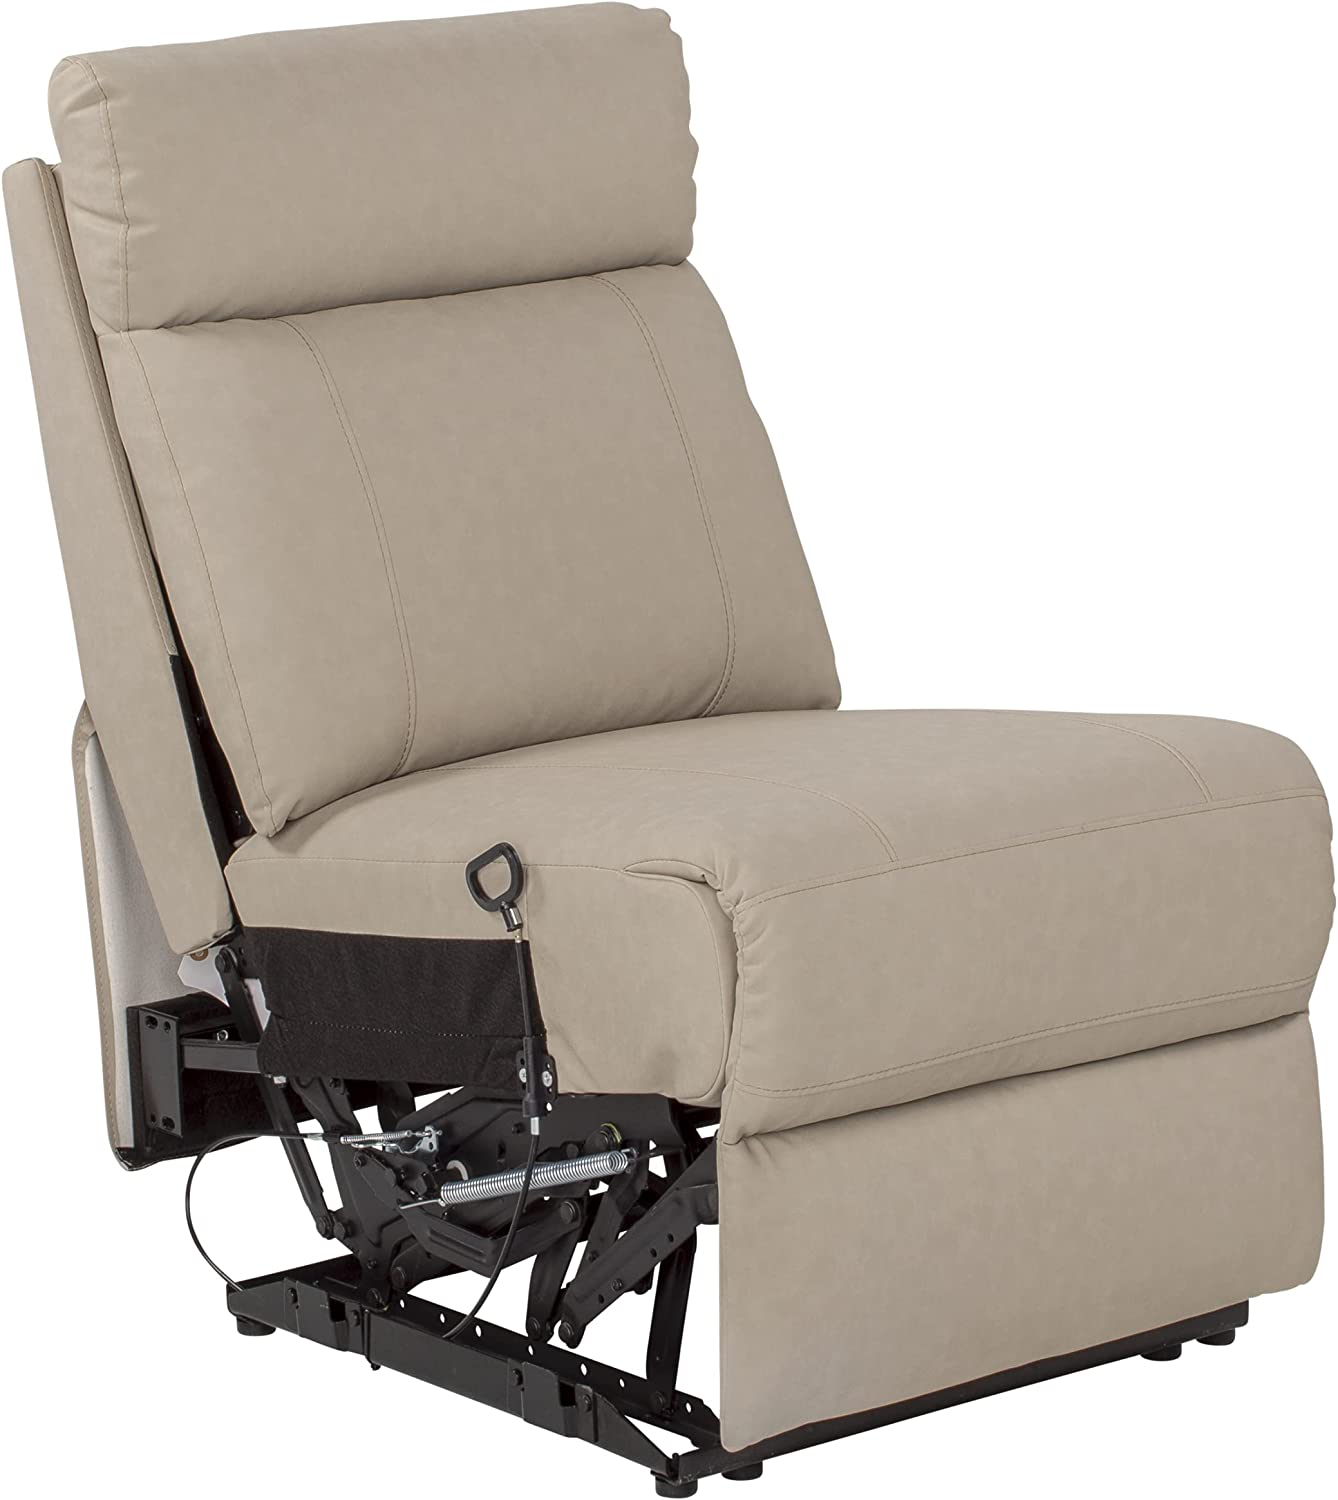 THOMAS PAYNE Heritage Series Theater Seating Collection Armless Recliner for 5th Wheel RVs Travel Trailers and Motorhomes Altoona